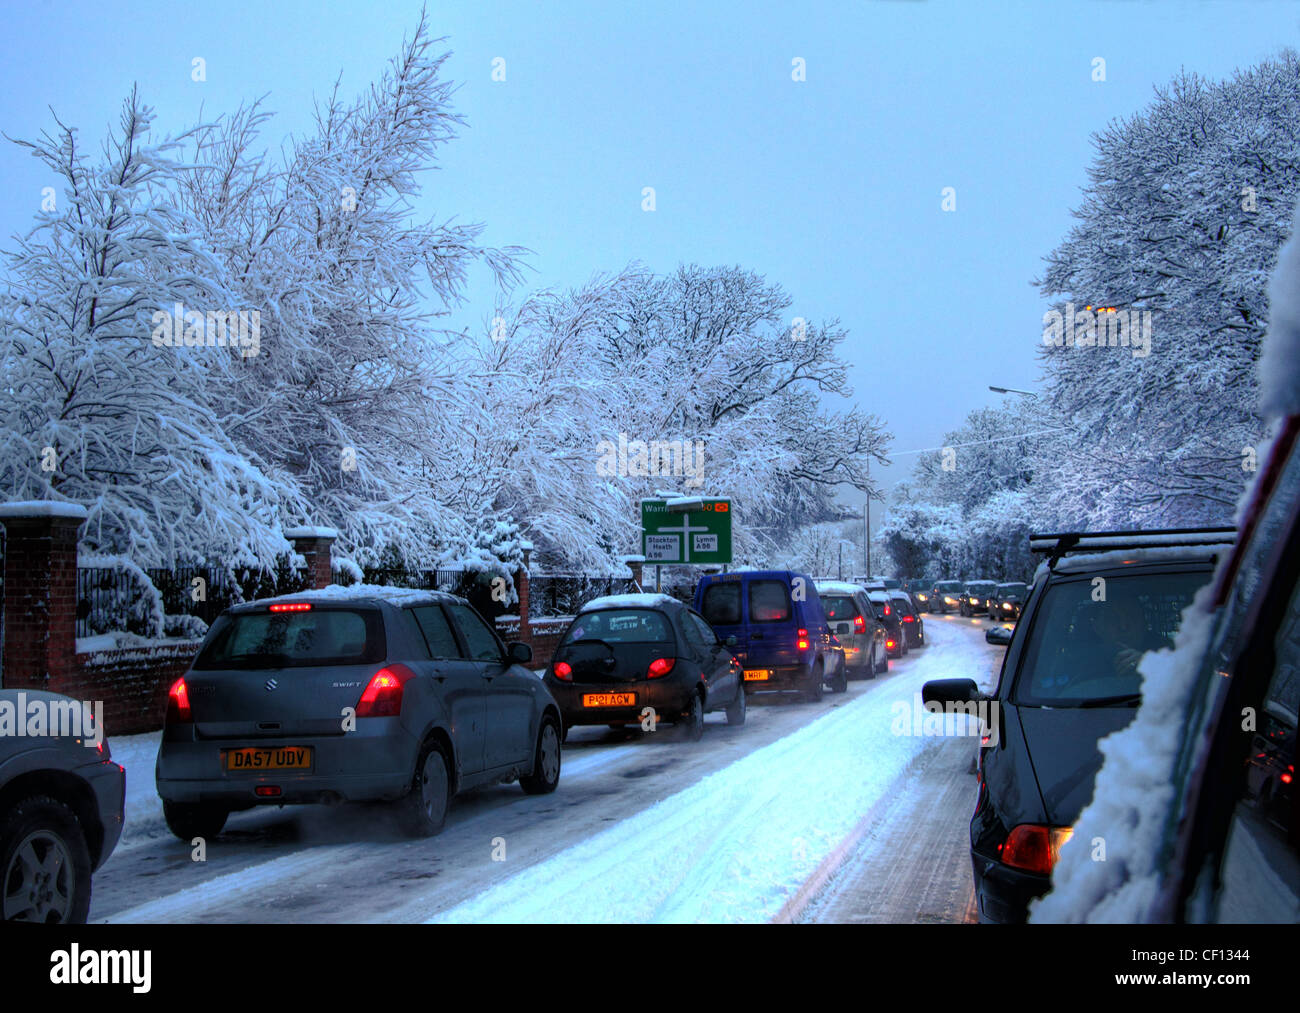 A50,traffic,jam,on,A50,close,to,Grappenhall,Warrington,Cheshire,England,UK,gotonysmith,car,cars,lights,stop,red,frosted,winter,ice,icy,ice,snow,fall,snowfall,white,january,winter,Warringtn,Warington,traffic,trafic,jam,gridlock,slides,slidy,slidie,gotonysmith,Buy Pictures of,Buy Images Of